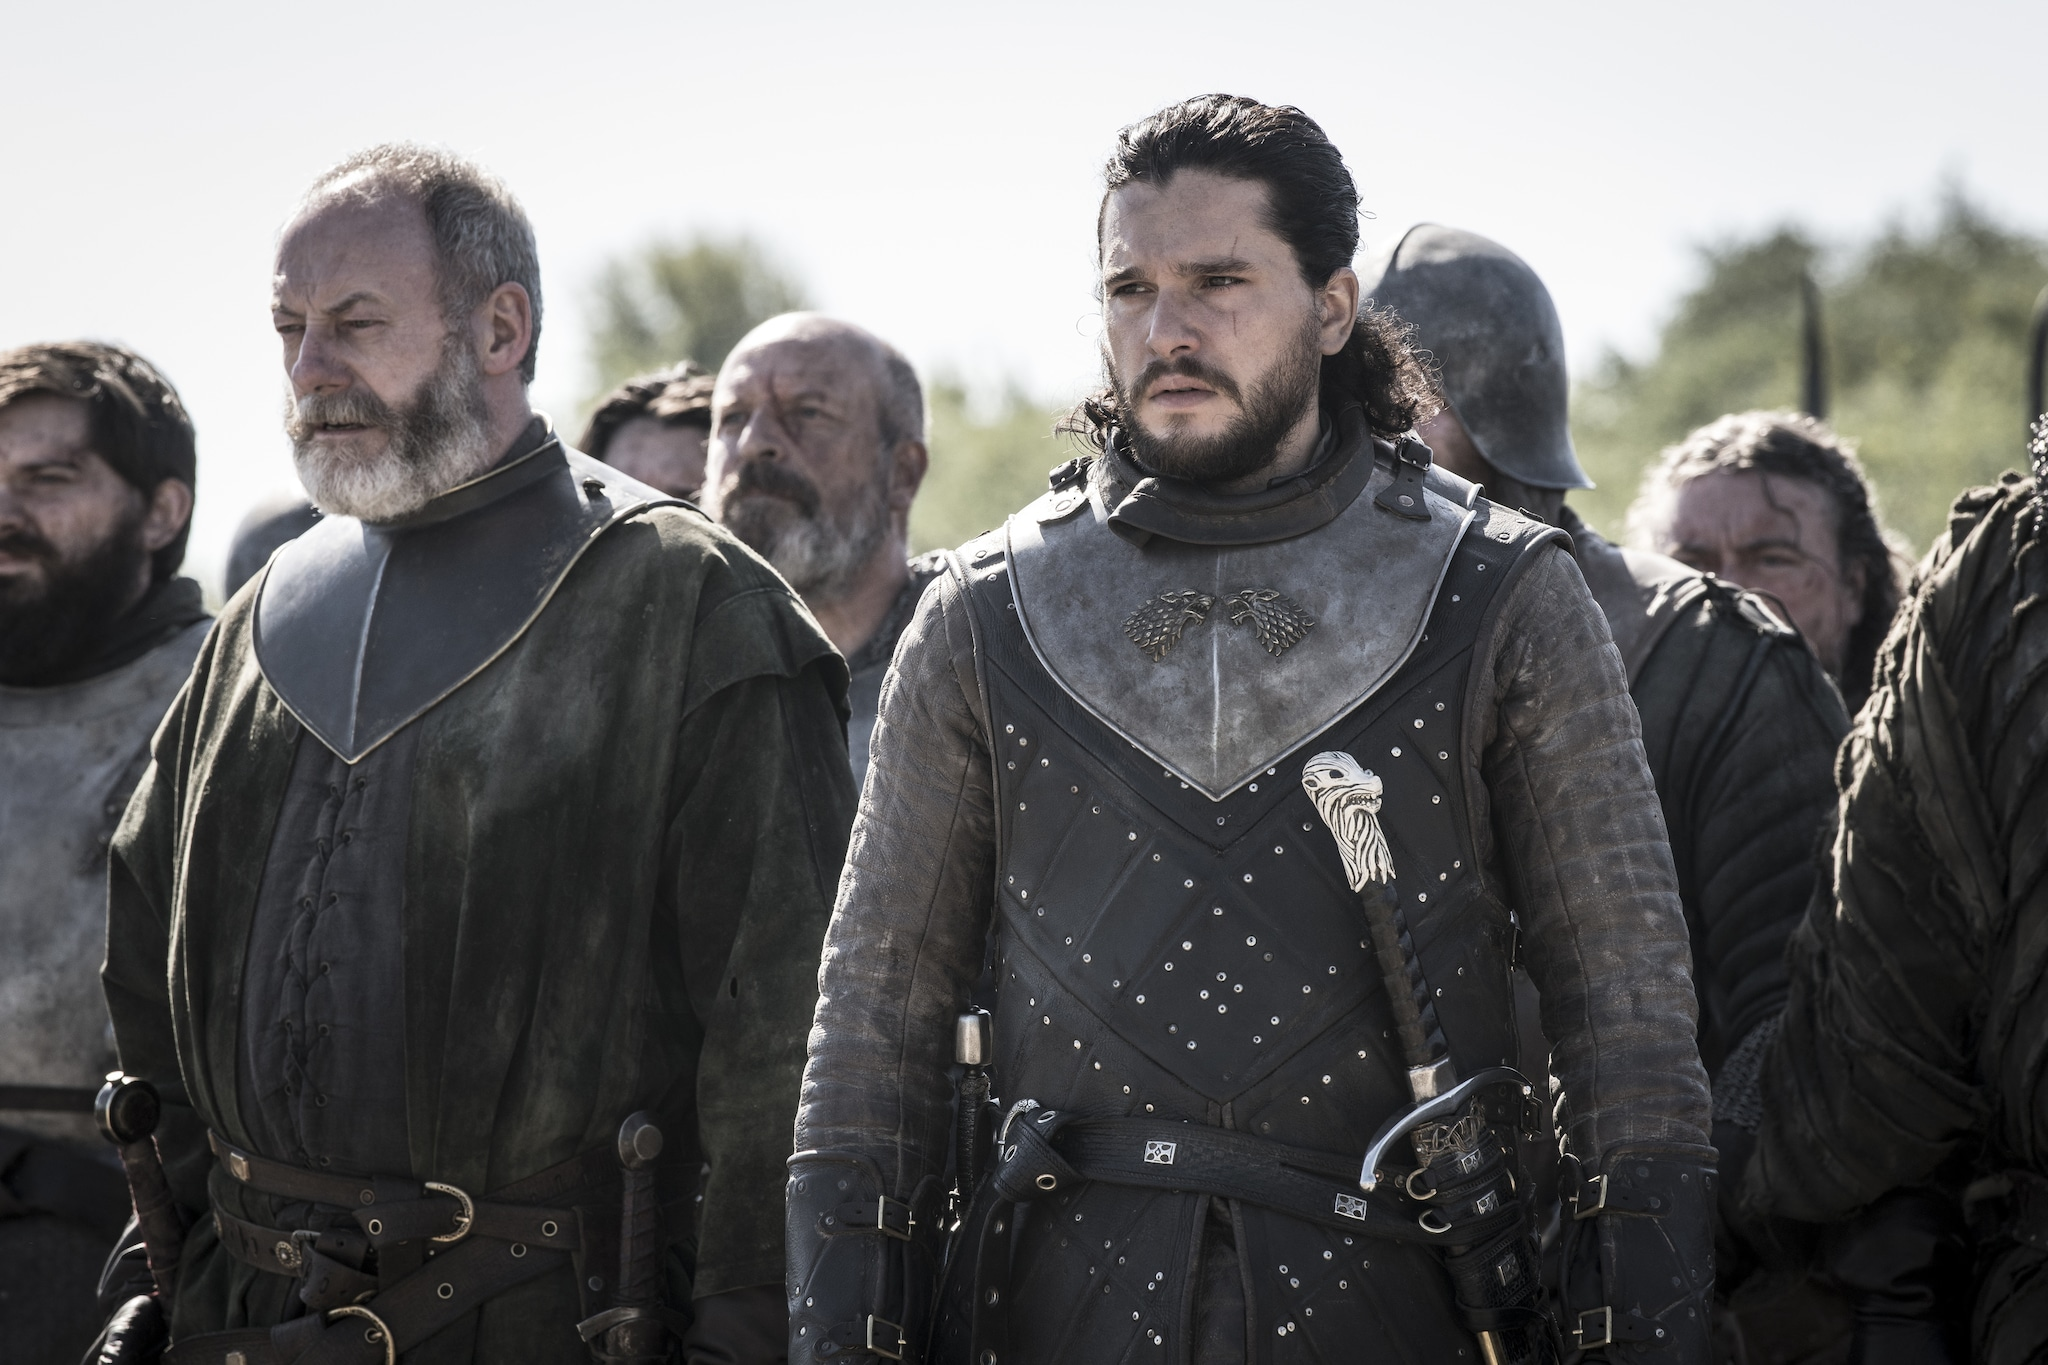 Kit Harington and Liam Cunningham in a still from Ep 05 S08